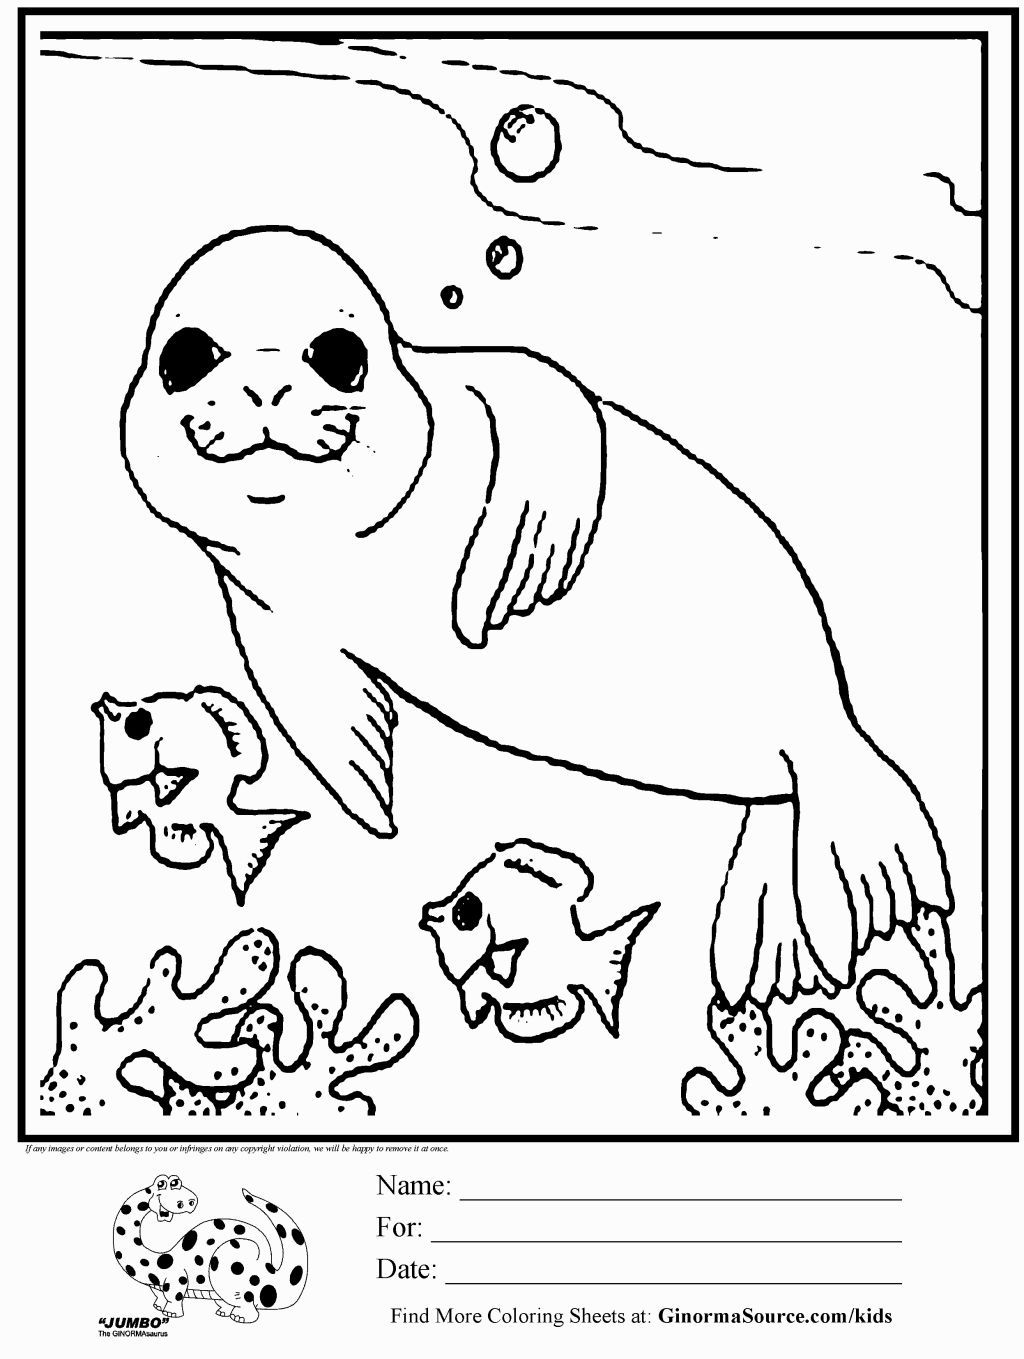 Seal Coloring Pages | Coloring Pages | Pinterest